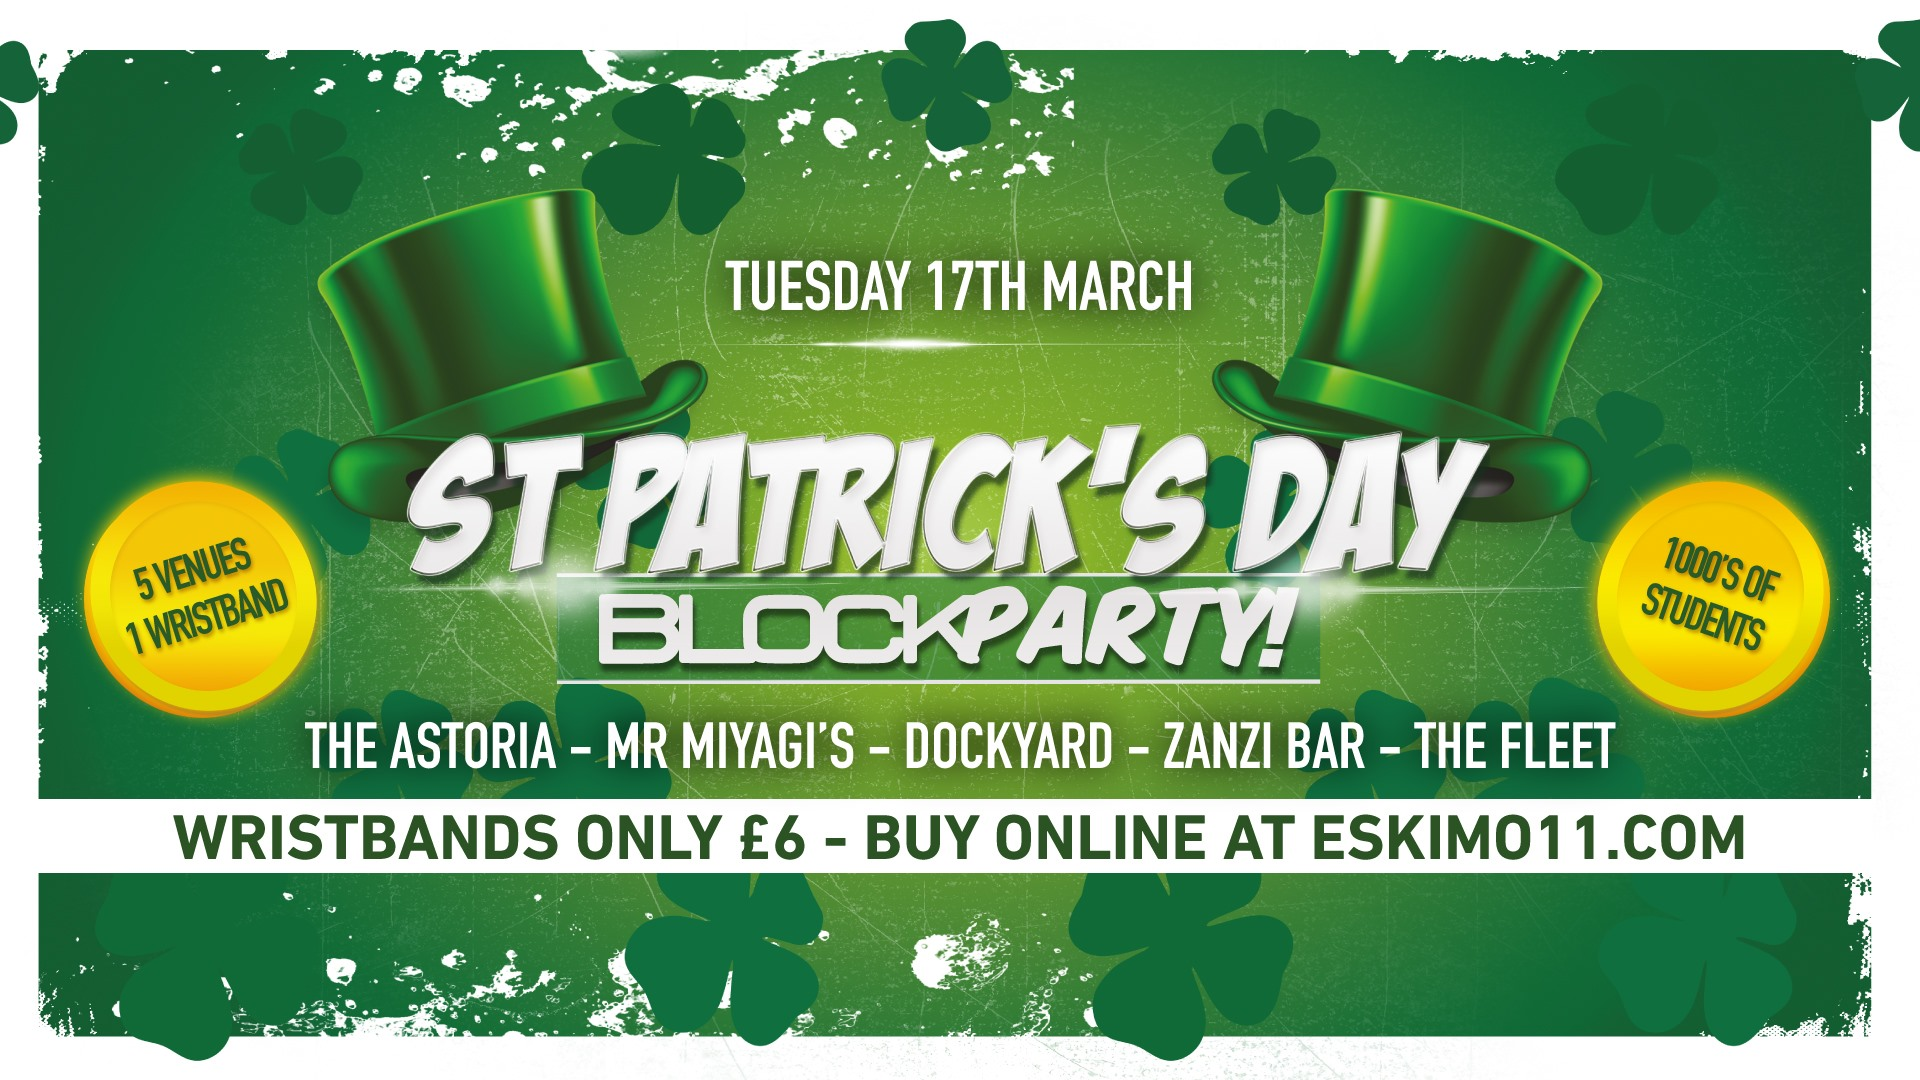 Block Party – Paddy's Day Parade / All Dayer! £6 Early bird Wristbands! Inc Dirty Disco & more!